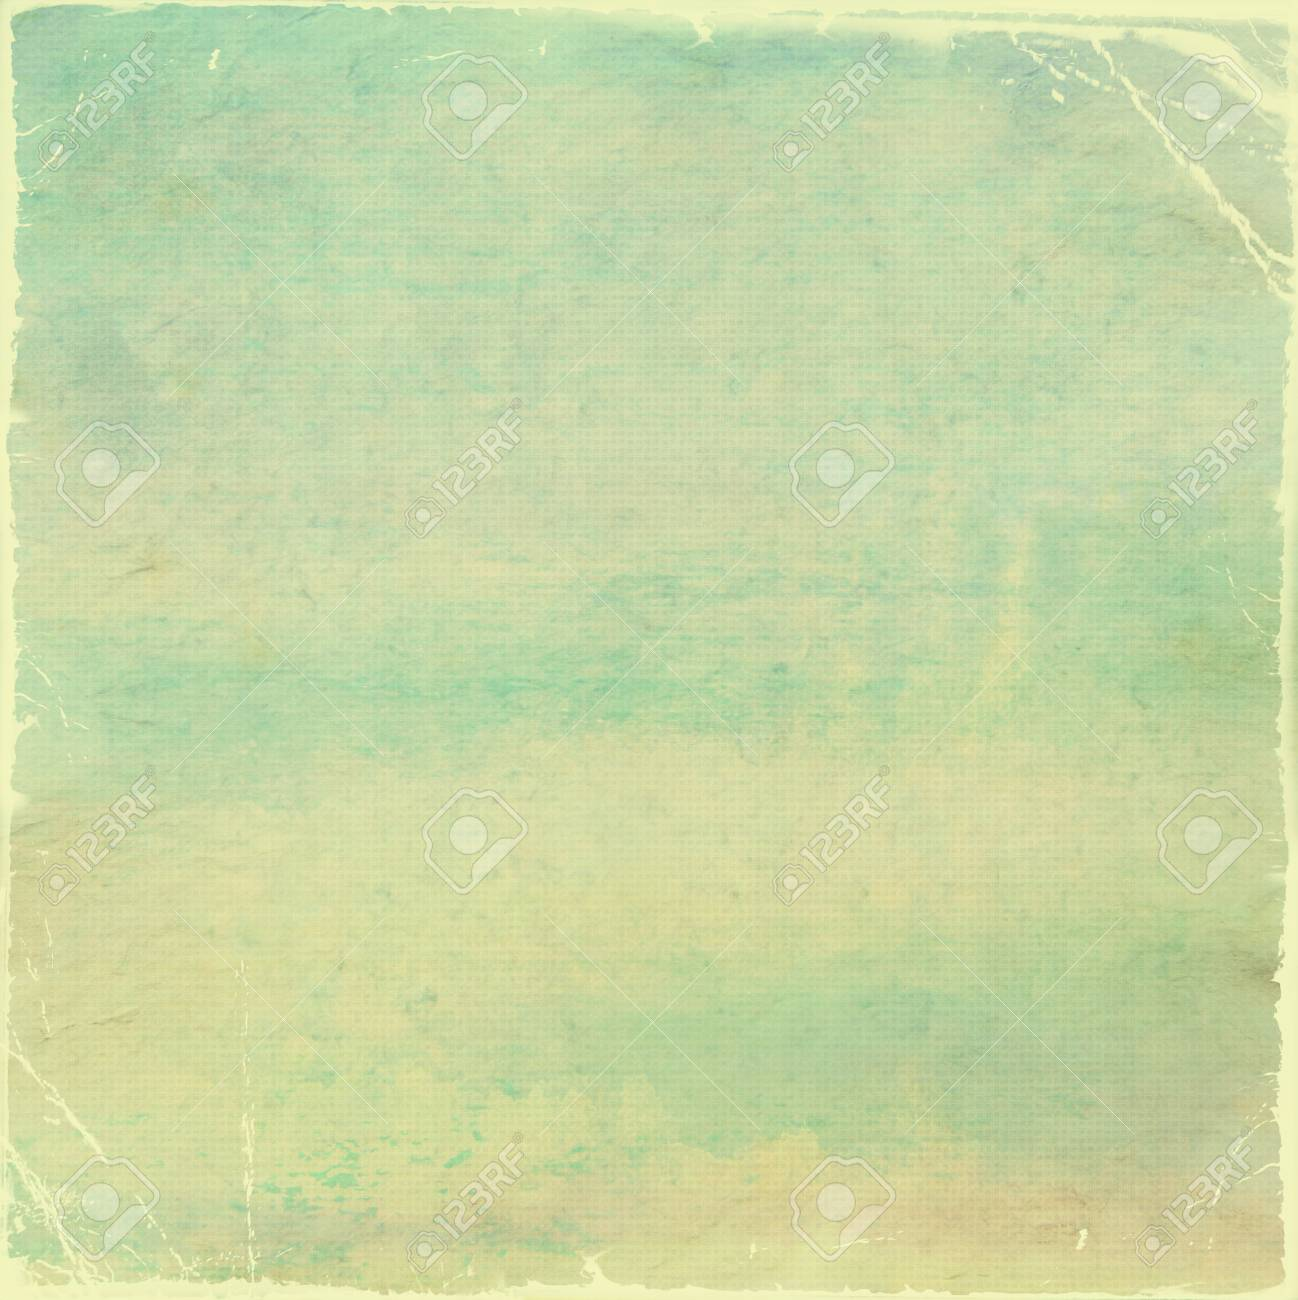 Designed grunge texture / paint background. For vintage wallpaper, old paper, and art border frame Stock Photo - 17074480